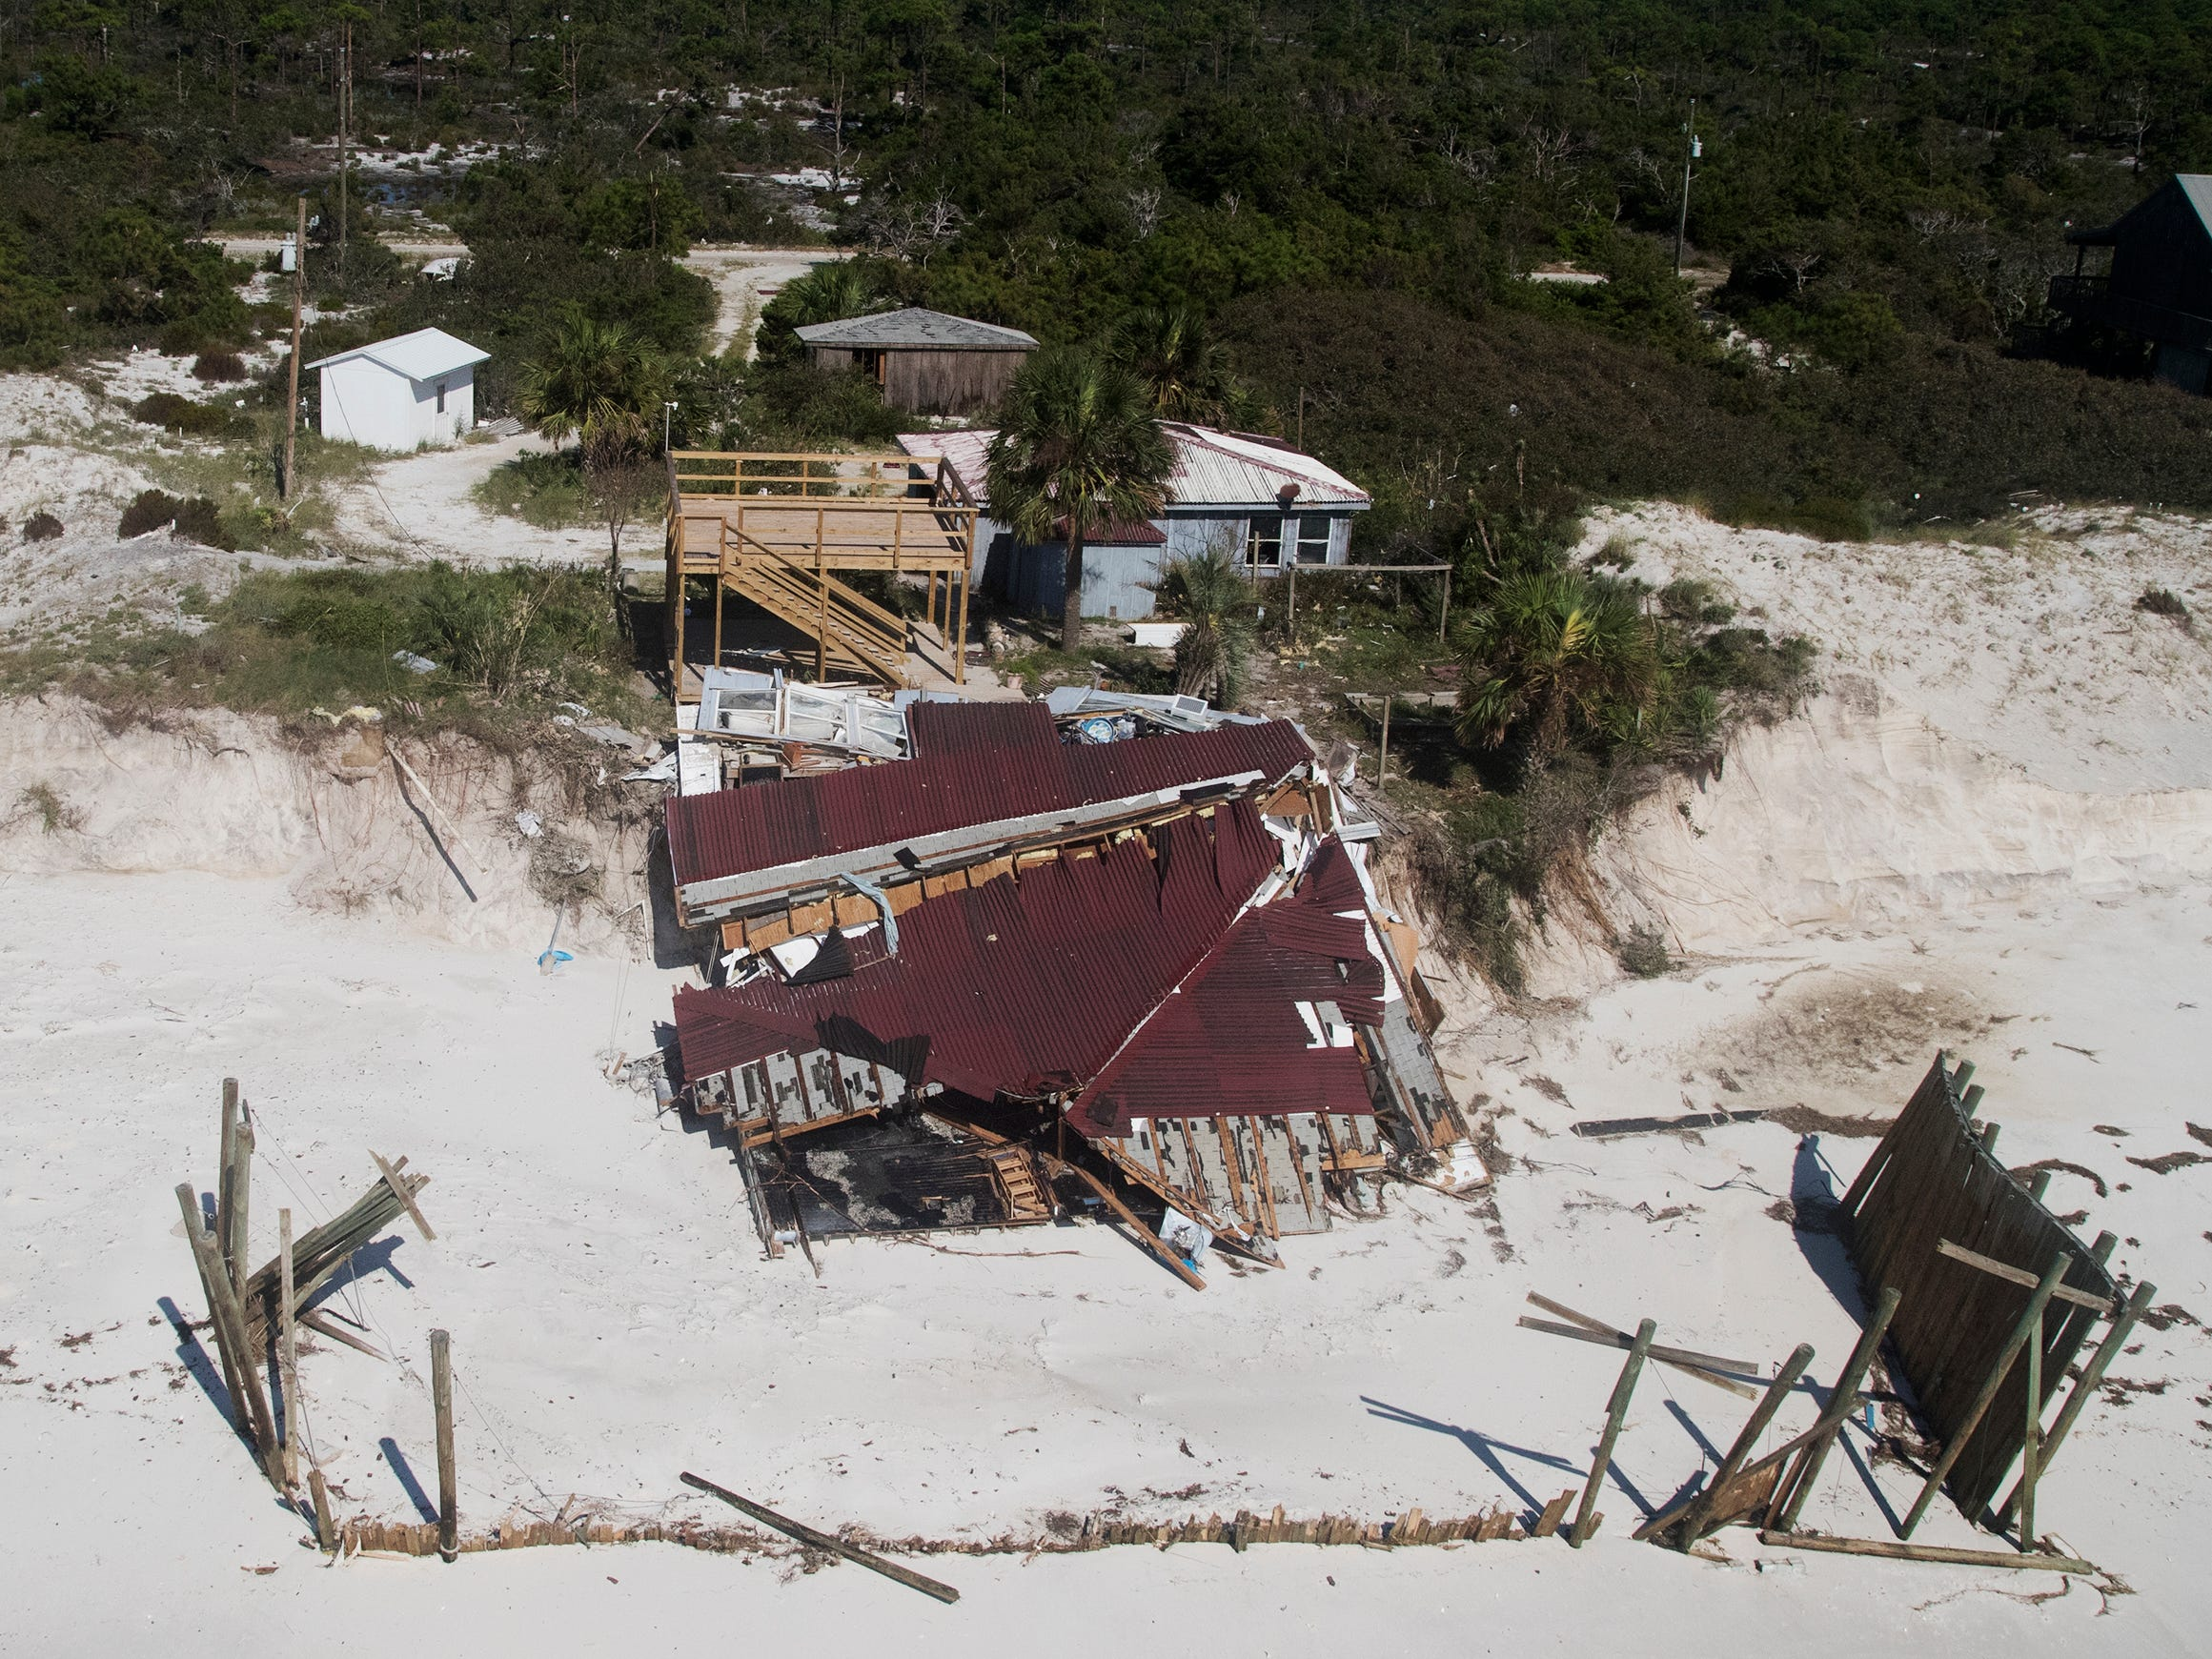 Hurricane Michael damaged several homes on Dog Island in Franklin County, Florida.